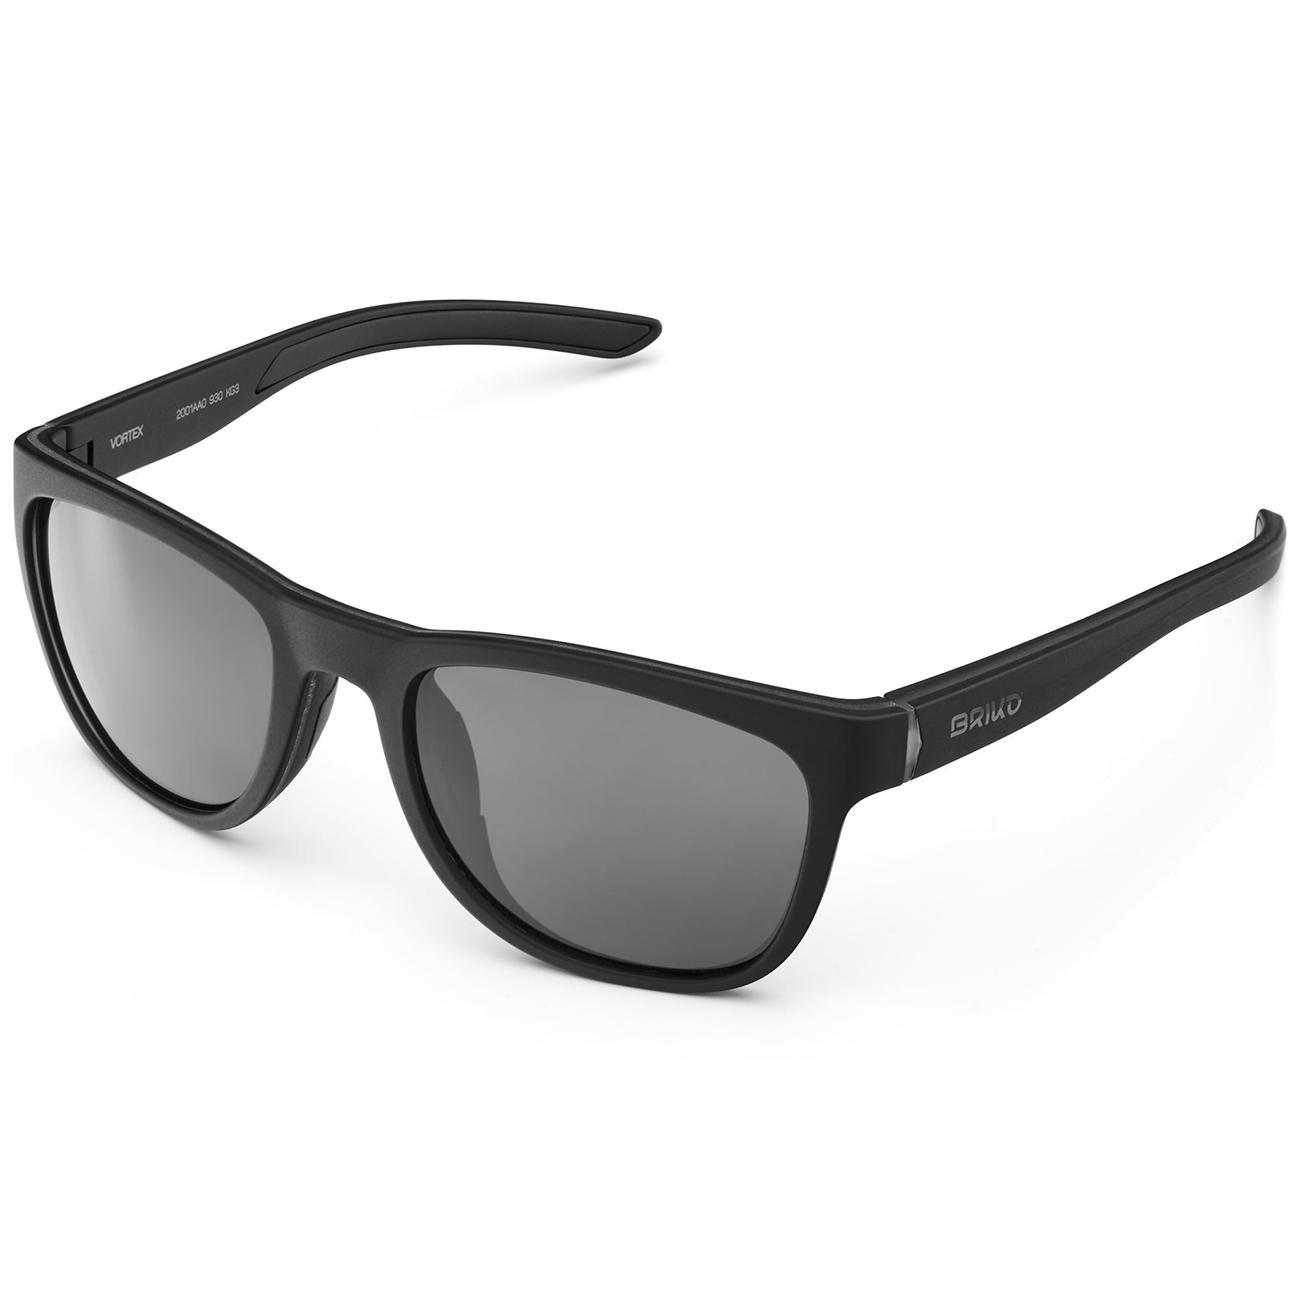 Afbeelding Briko Casual zonnebril unisex Zwart - Vortex Color HD Sunglasses Mt Black Cry -Kg3